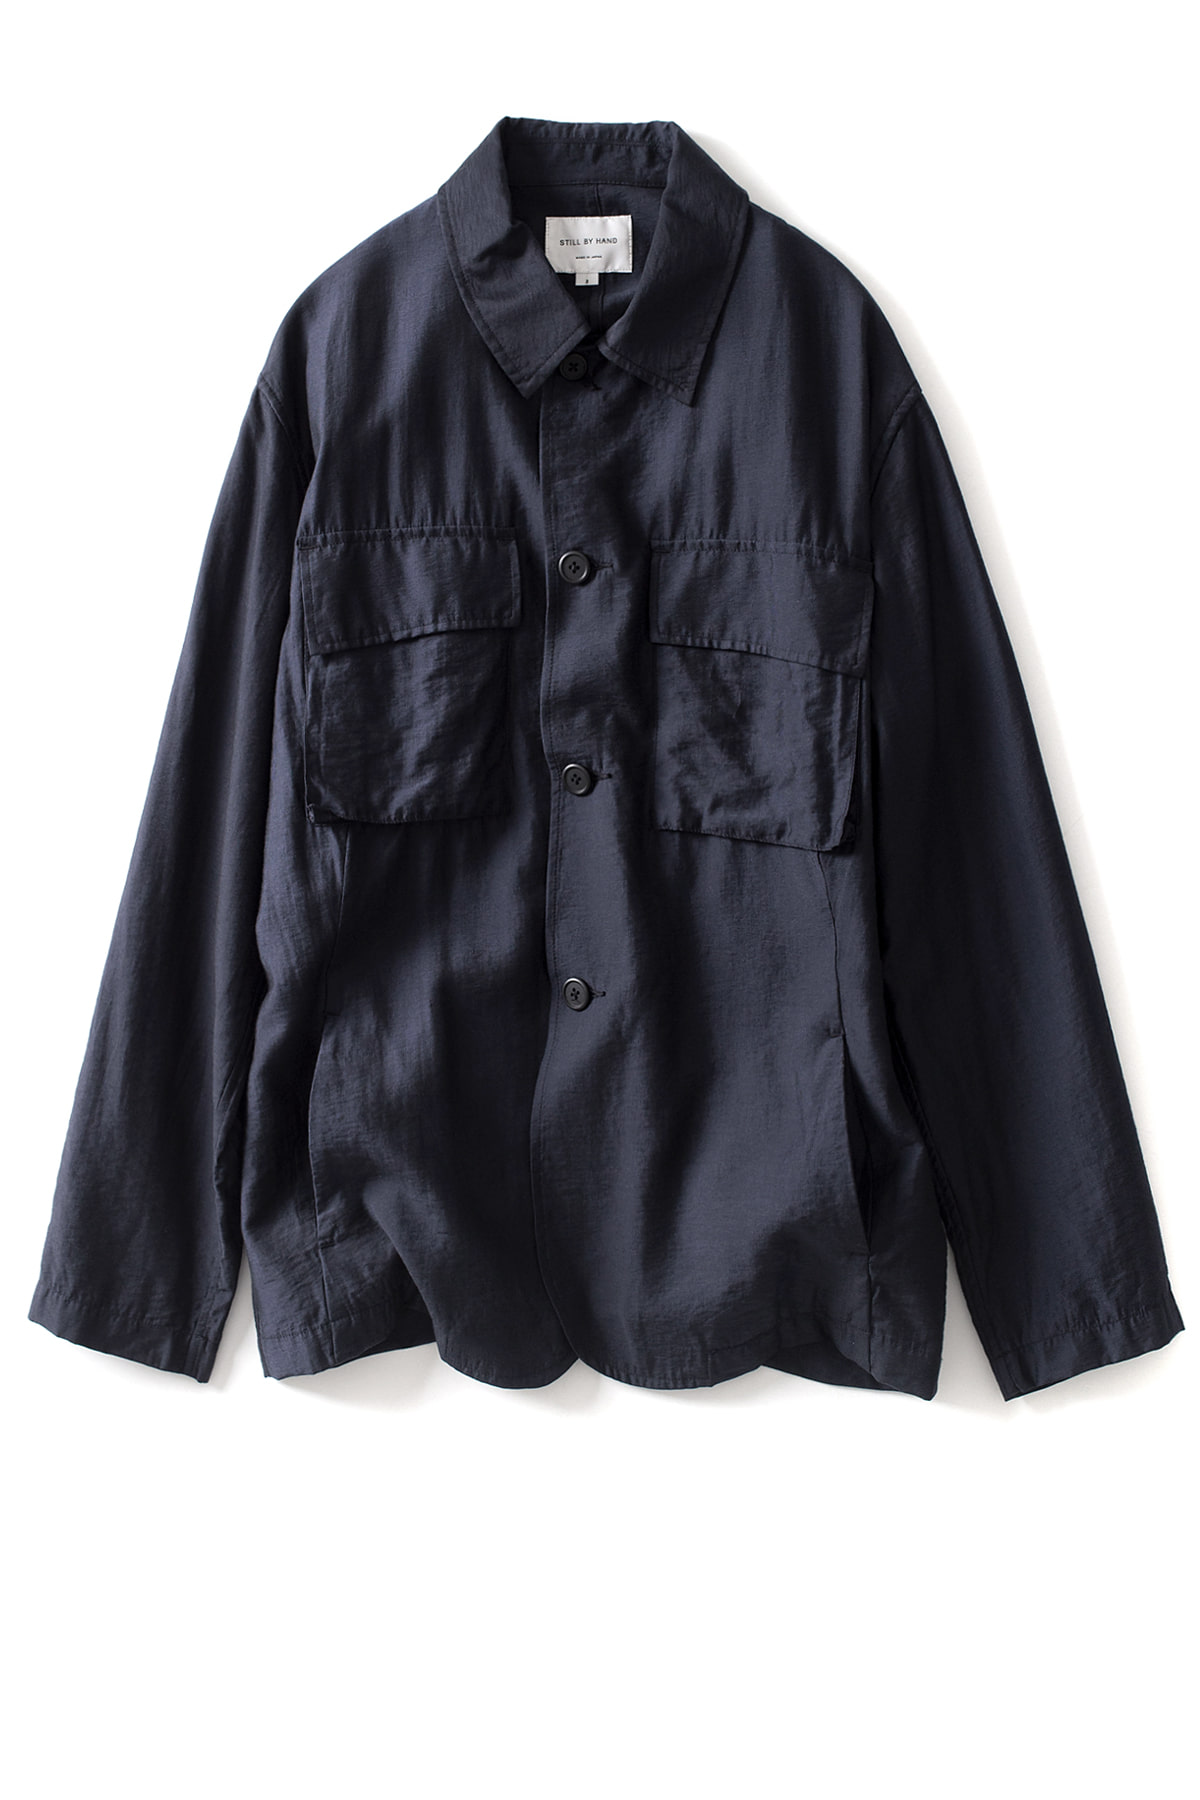 Still by Hand : B.D.U Detail Shirt Jacket (Navy)